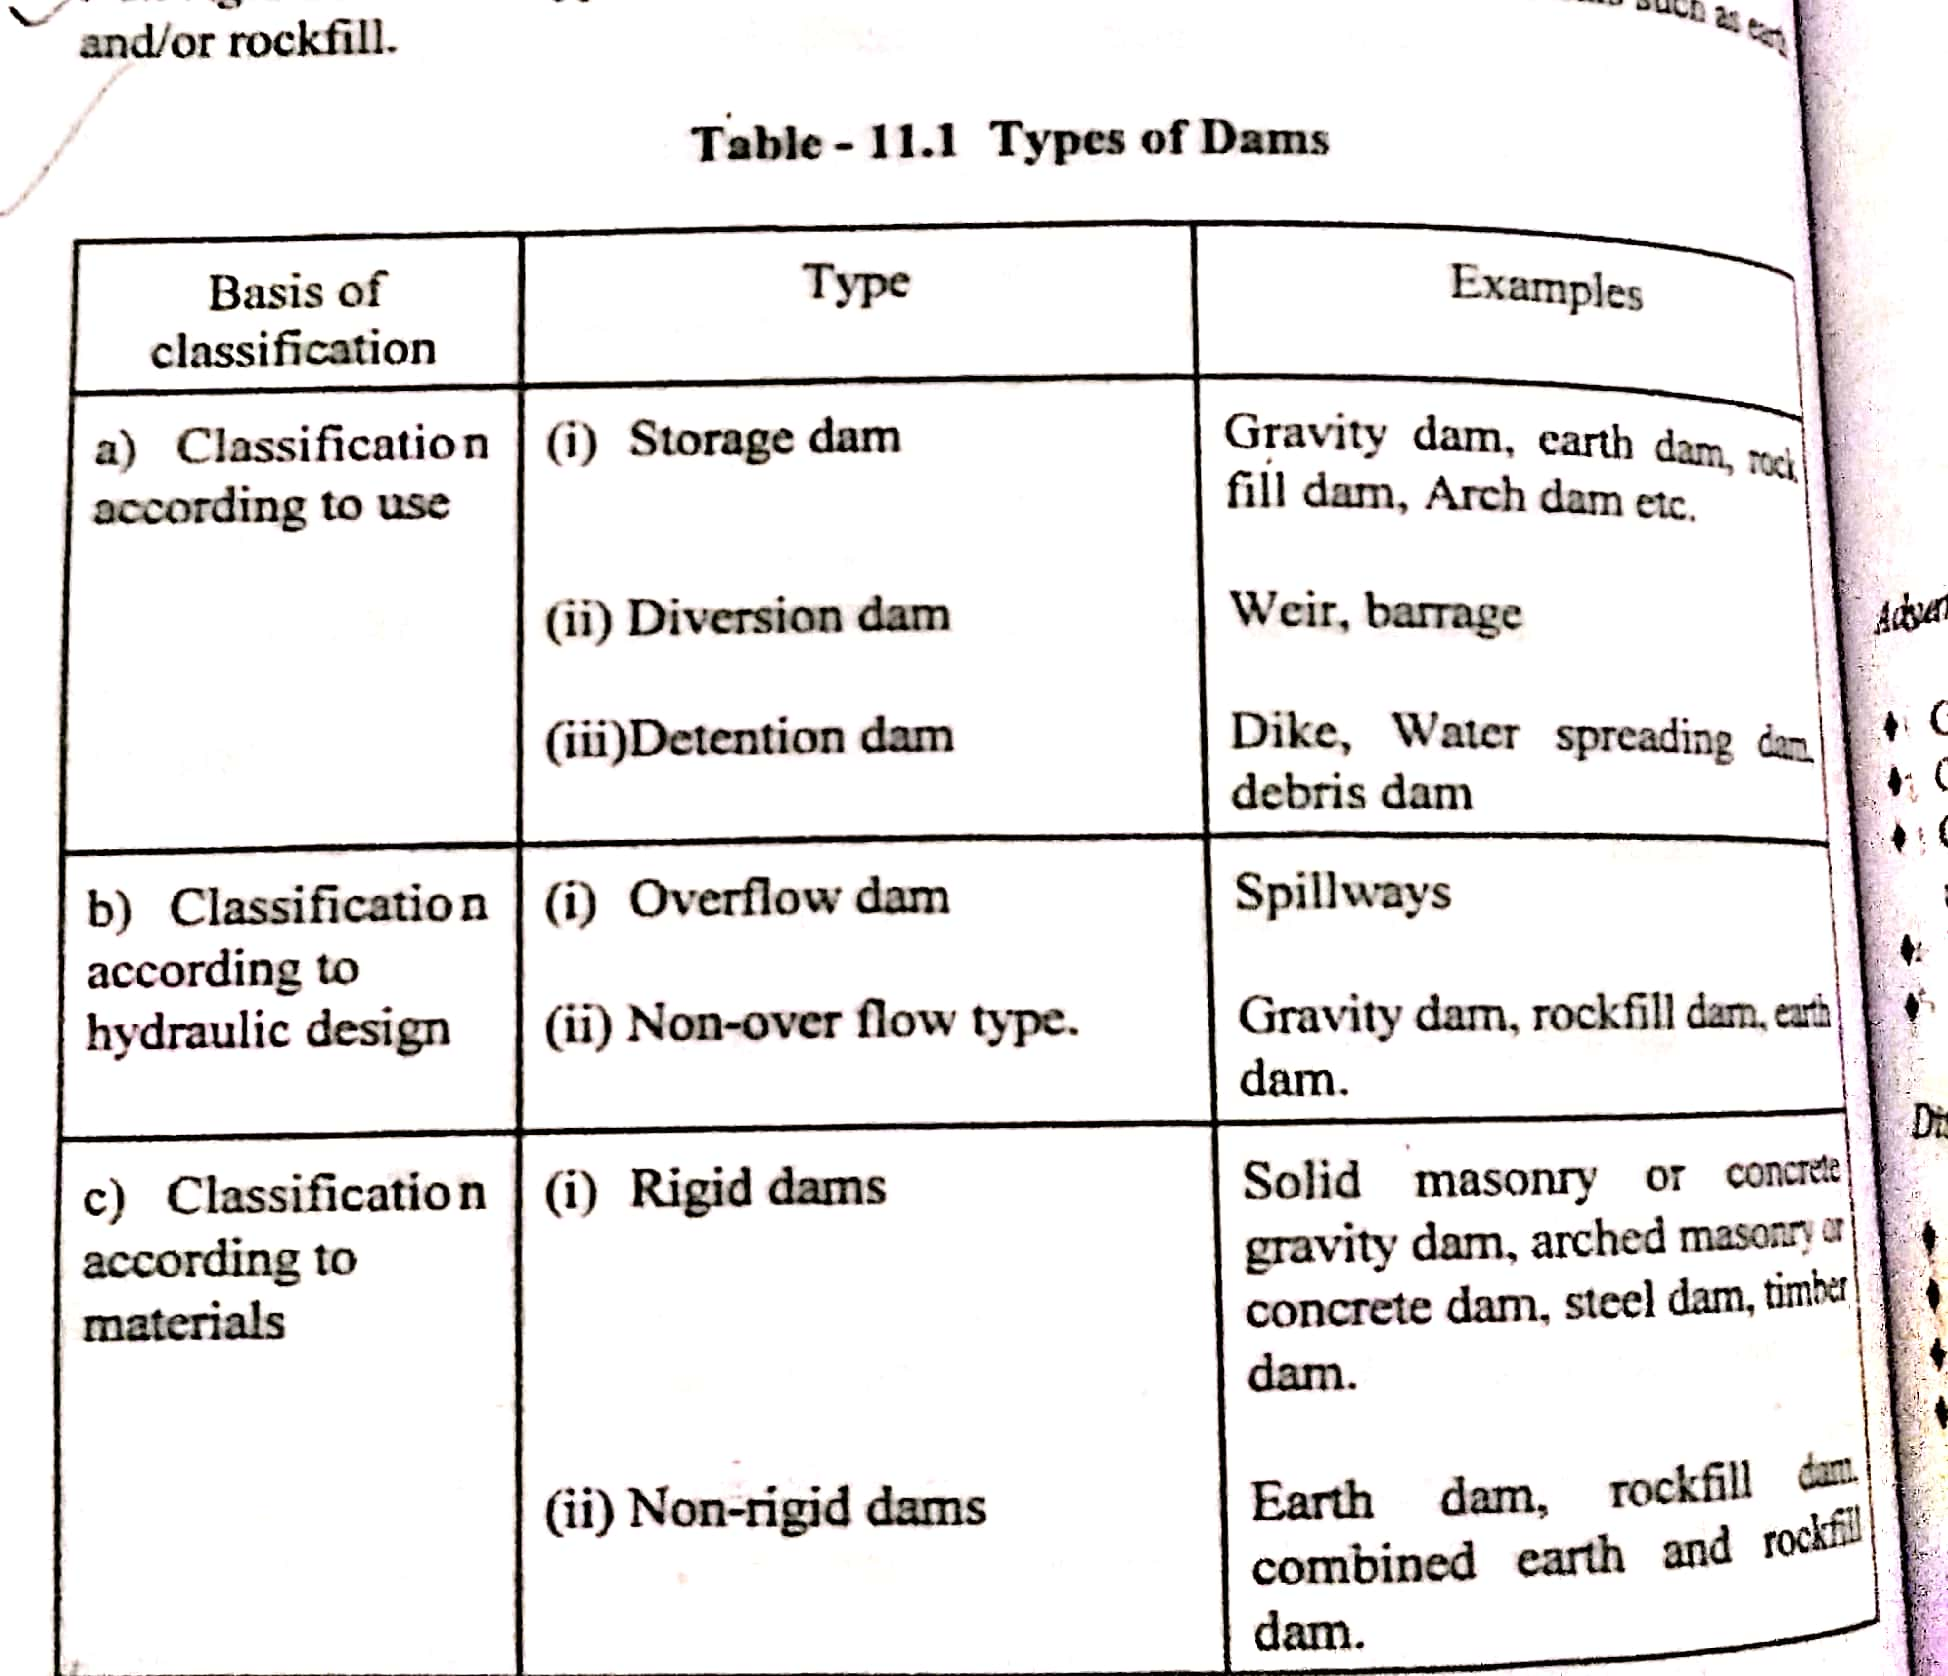 Type of Dams and their properties -New Doc 2019-11-30 20.41.41_74.jpg